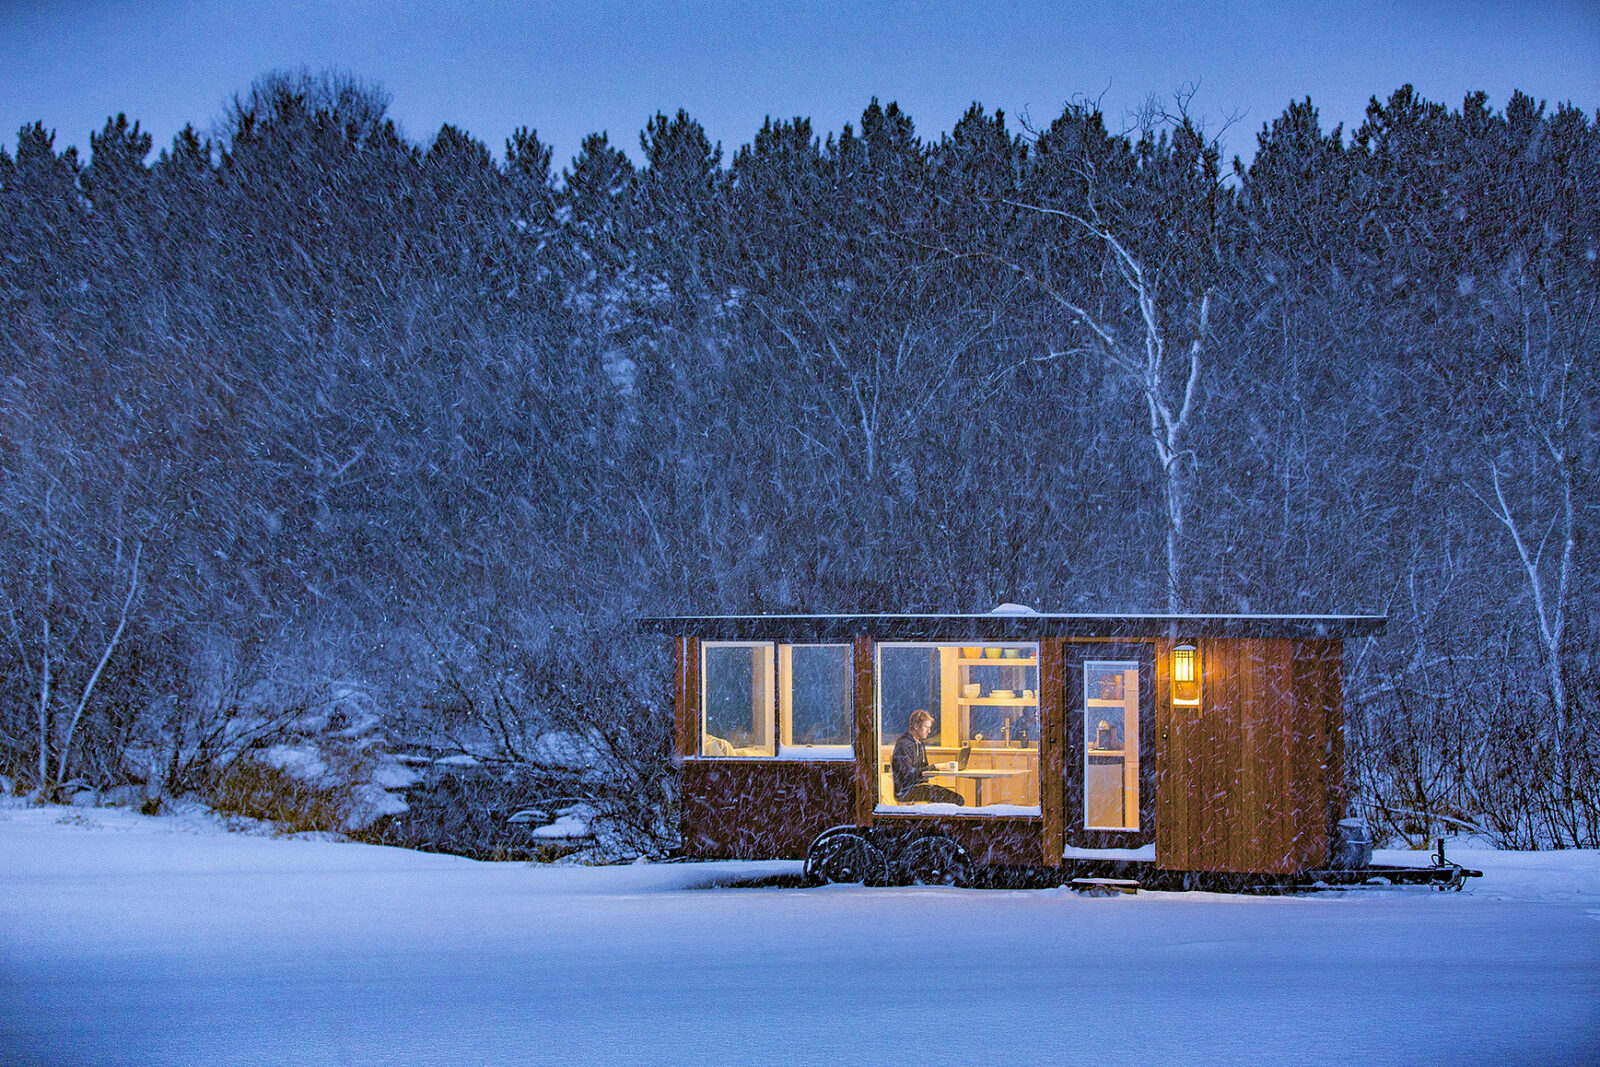 Vista Tiny House 1600x1067 - Vista Tiny House